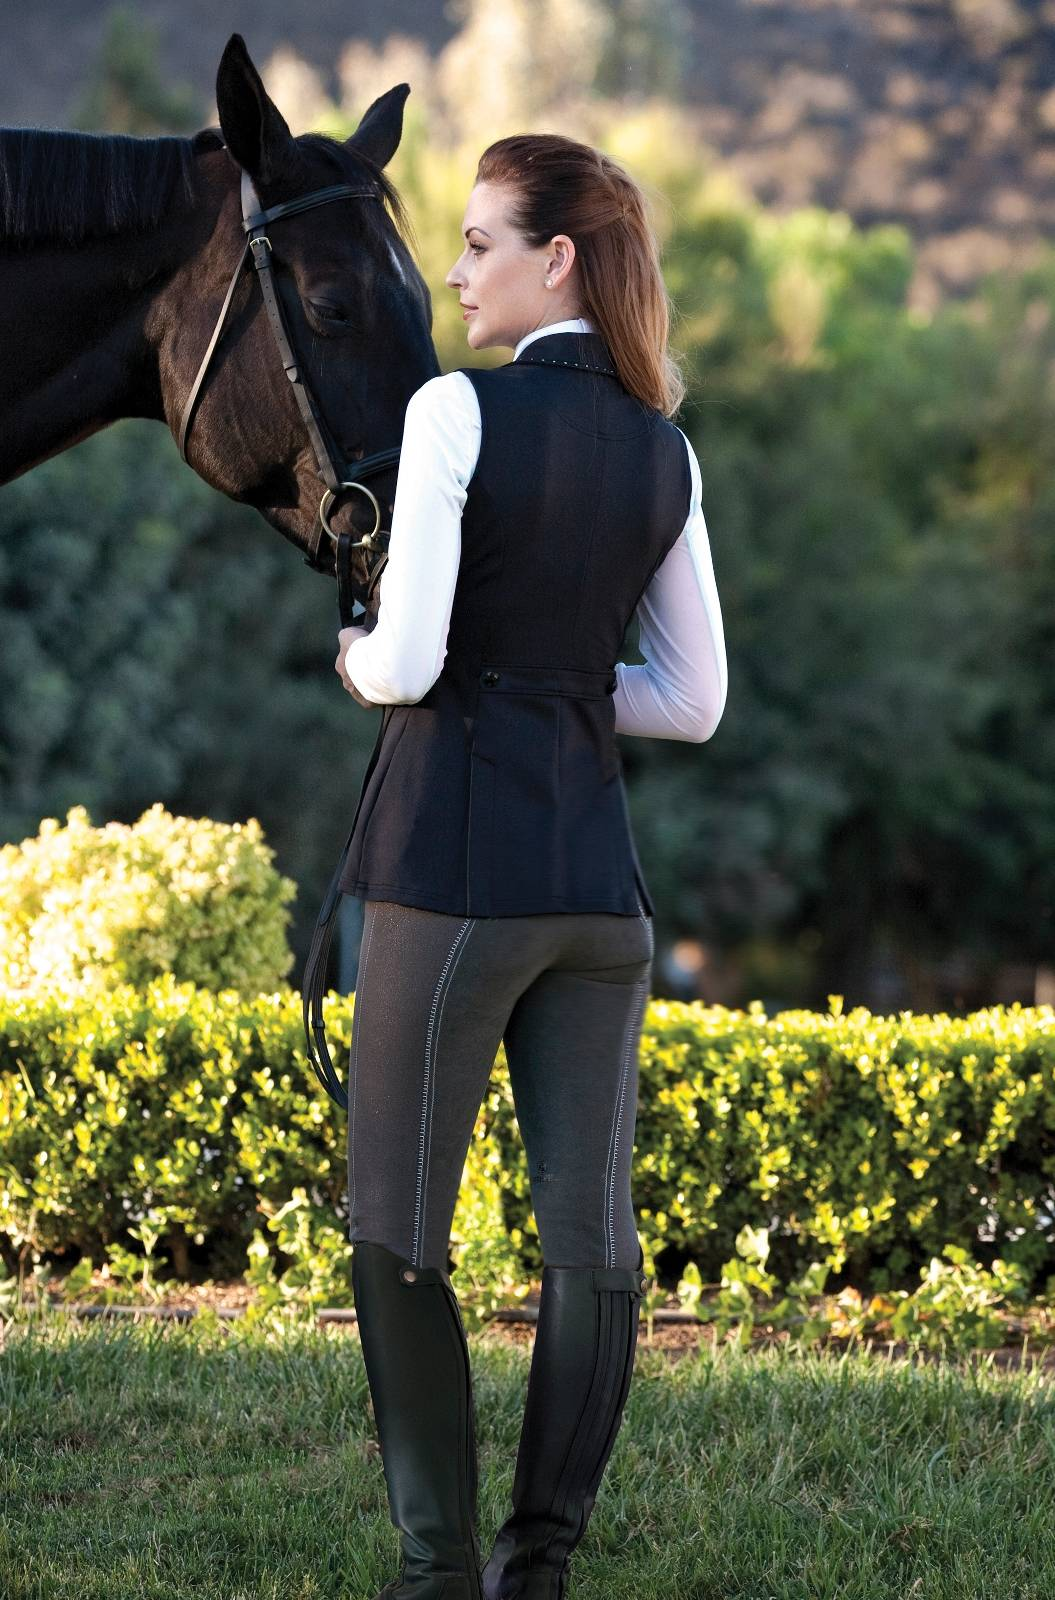 Romfh International Sparkle Denim Breeches - Ladies, Full Seat